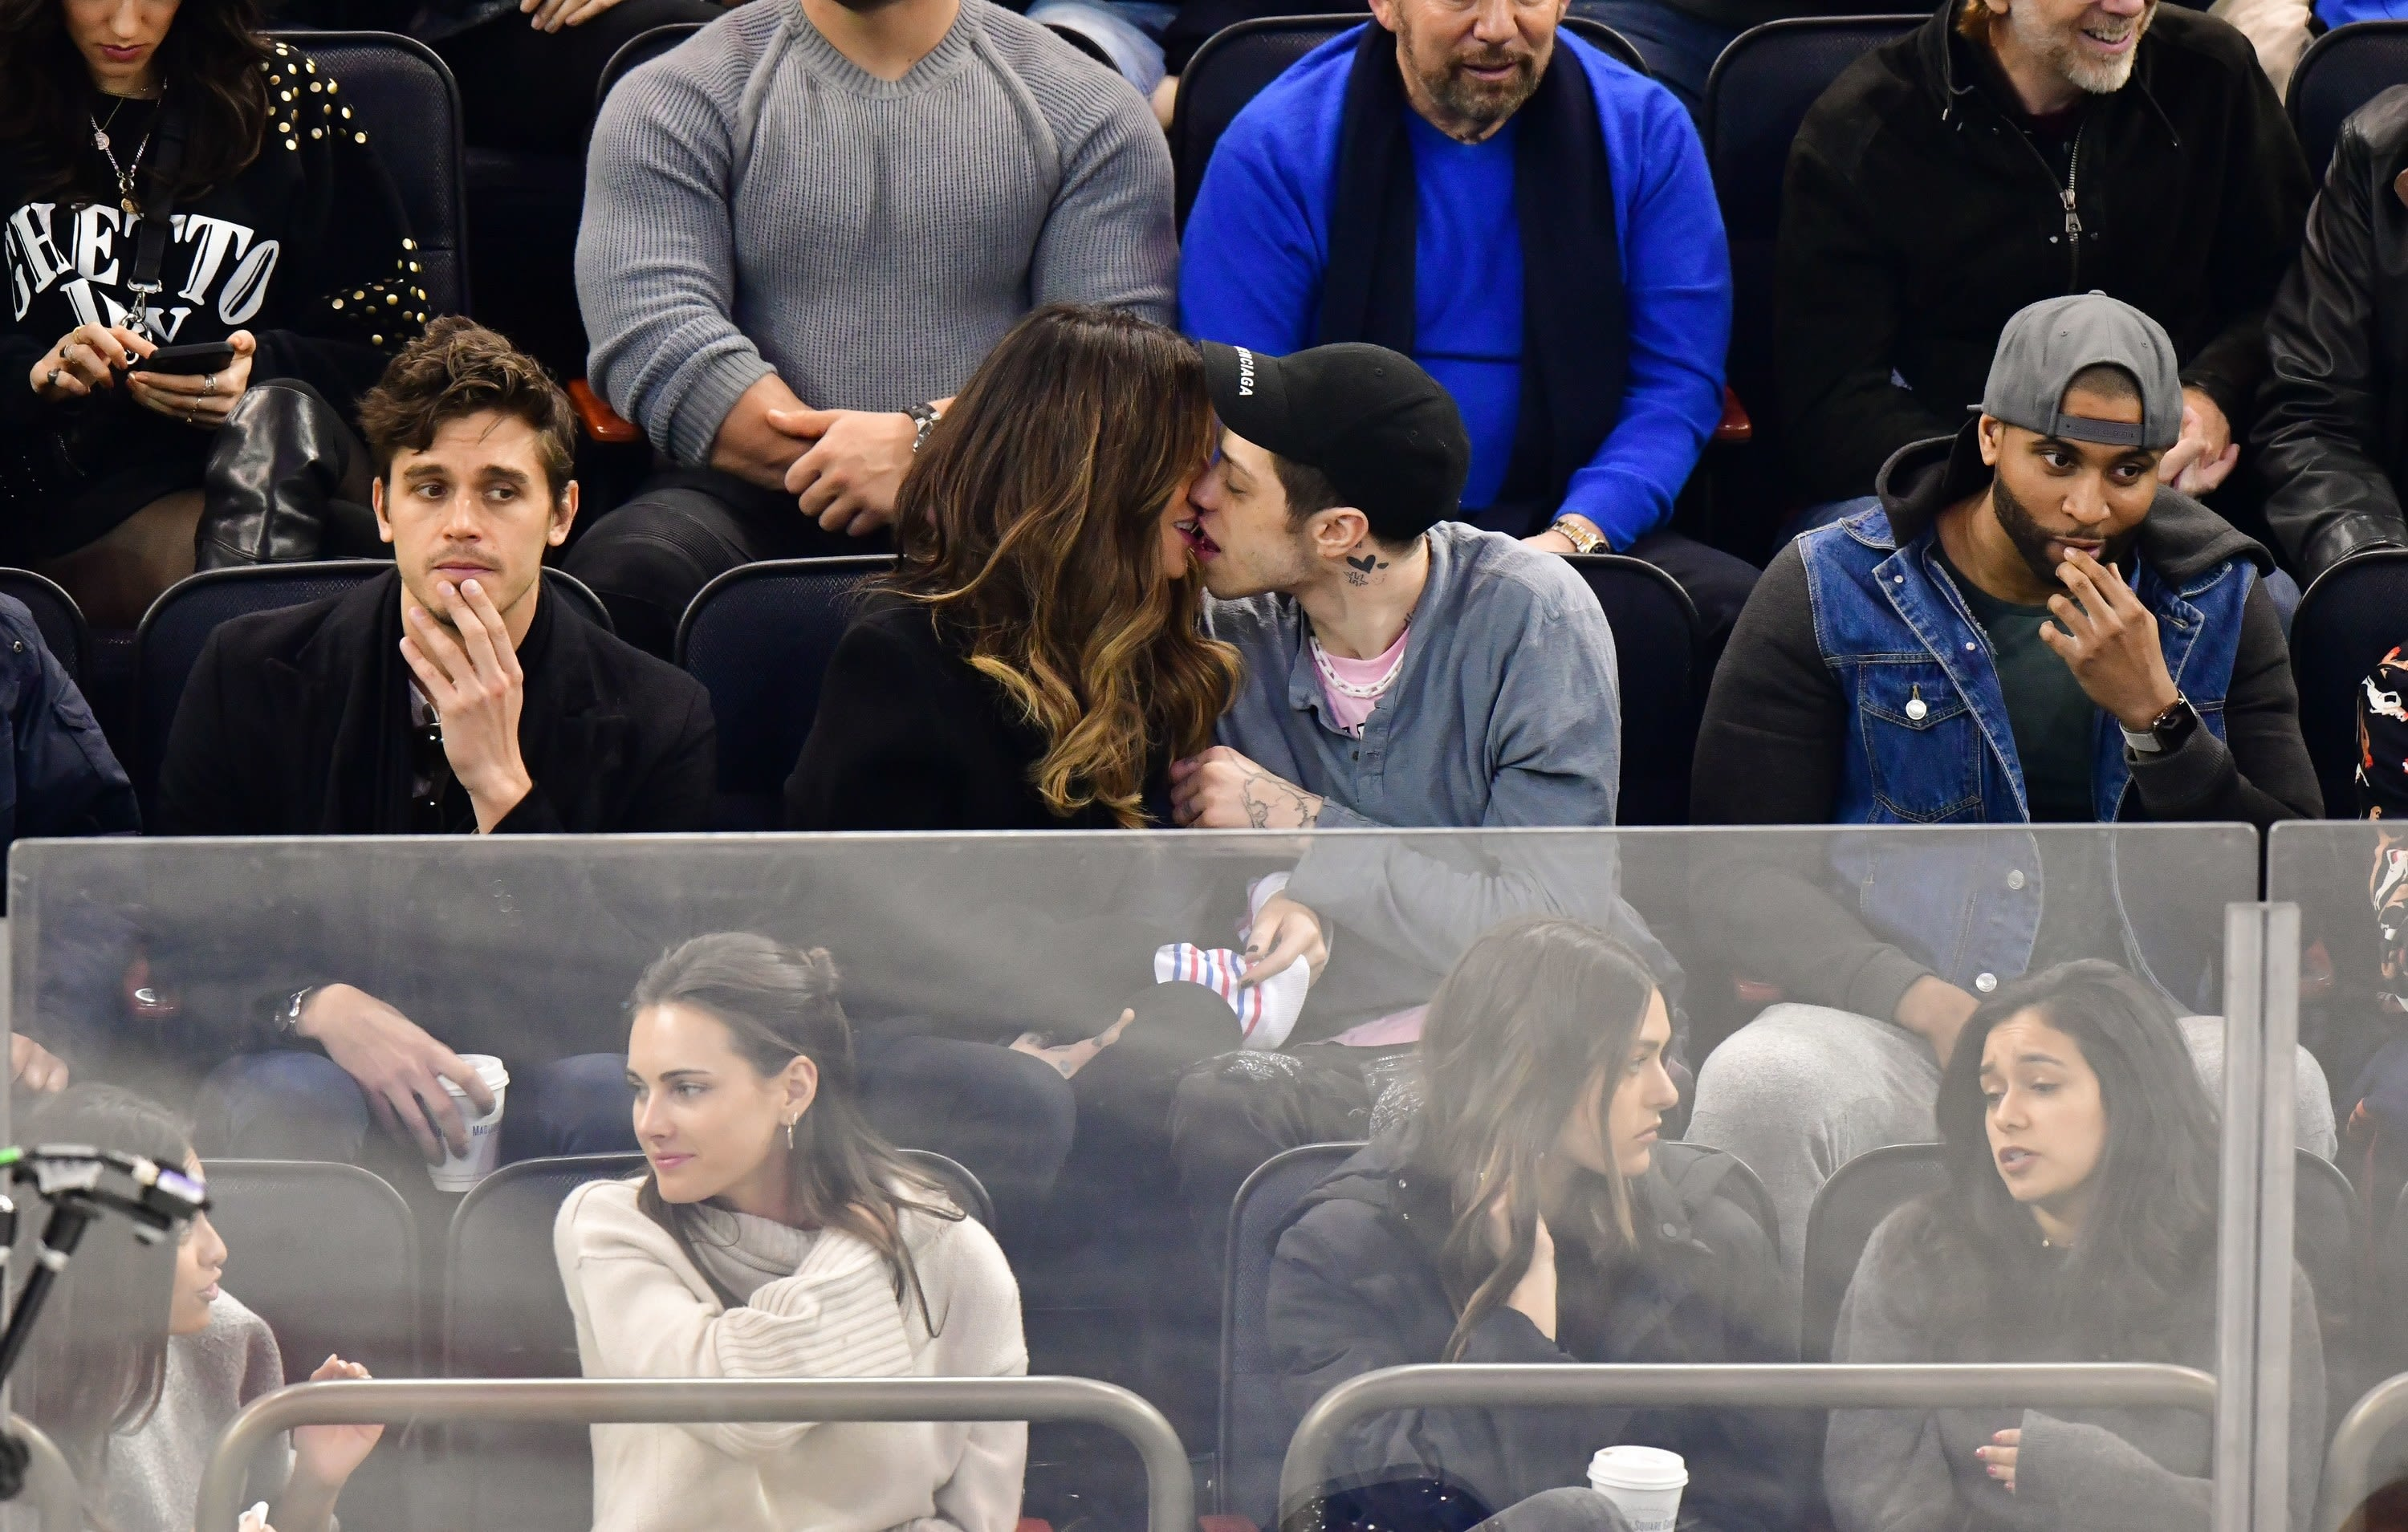 kate and pete kissing